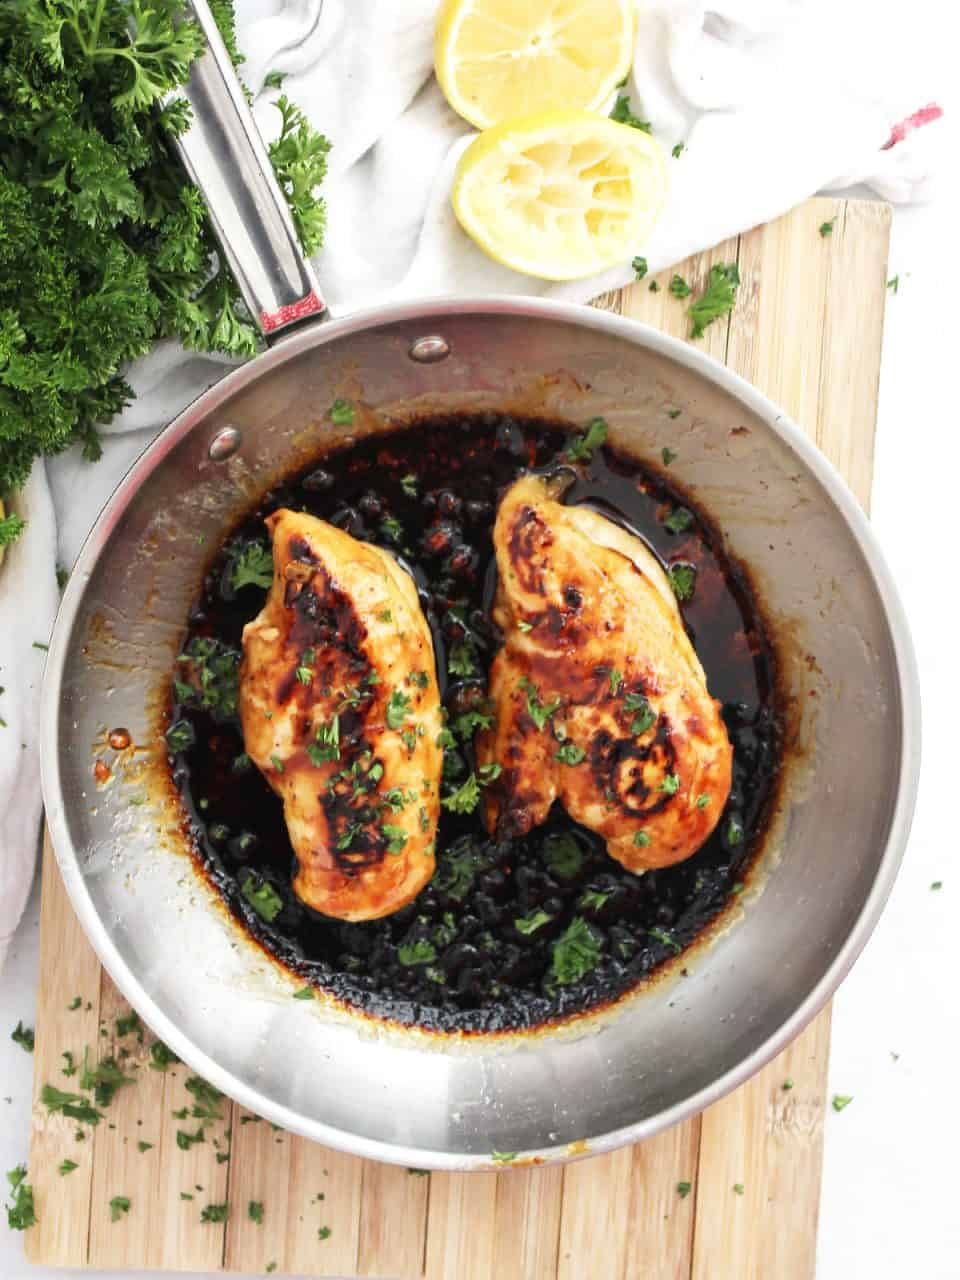 Two cooked chicken breasts in a skillet with the honey lemon sauce.